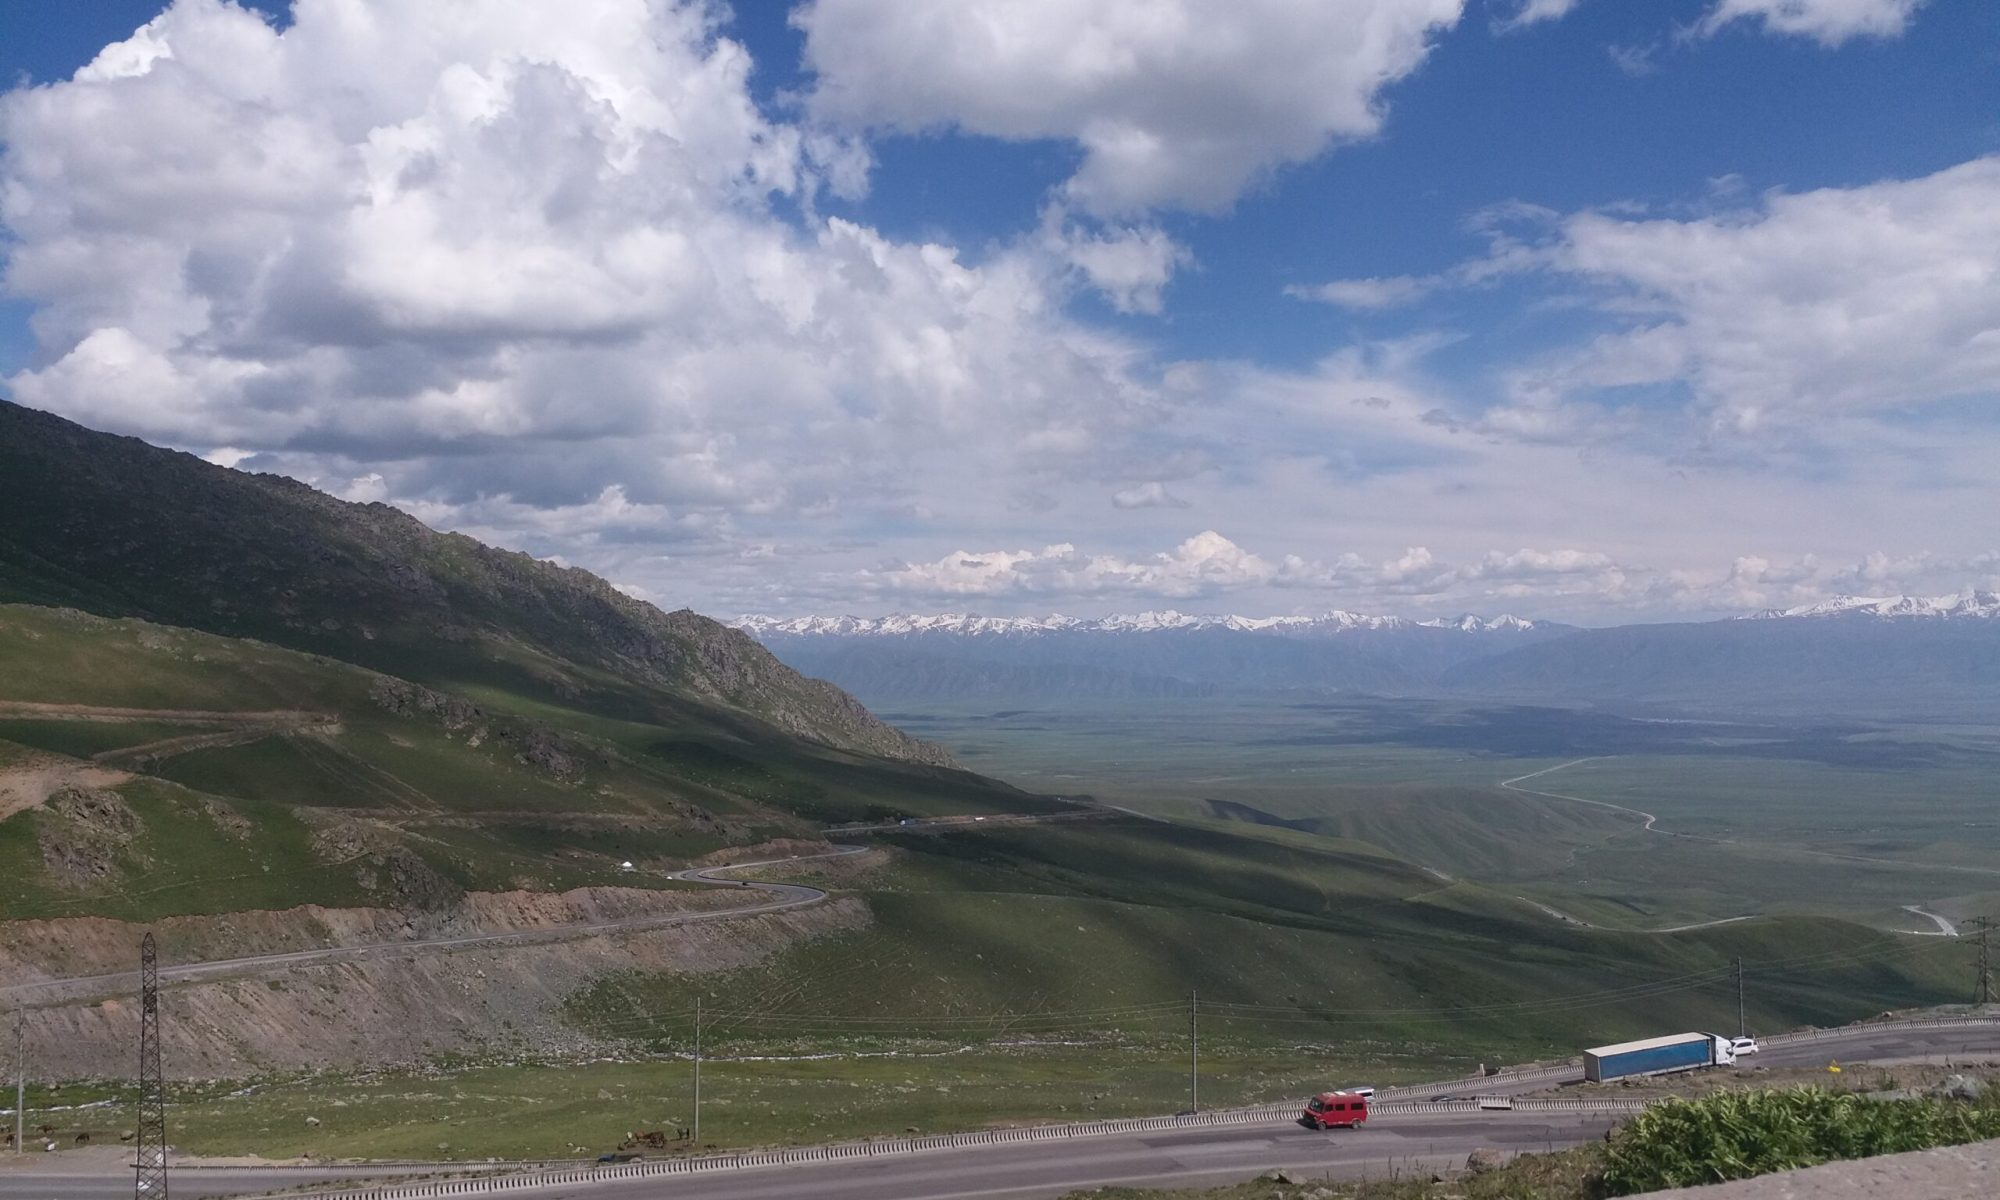 K in Motion Travel Blog. Silk Road to Western Kyrgyzstan. View from the Silk Road